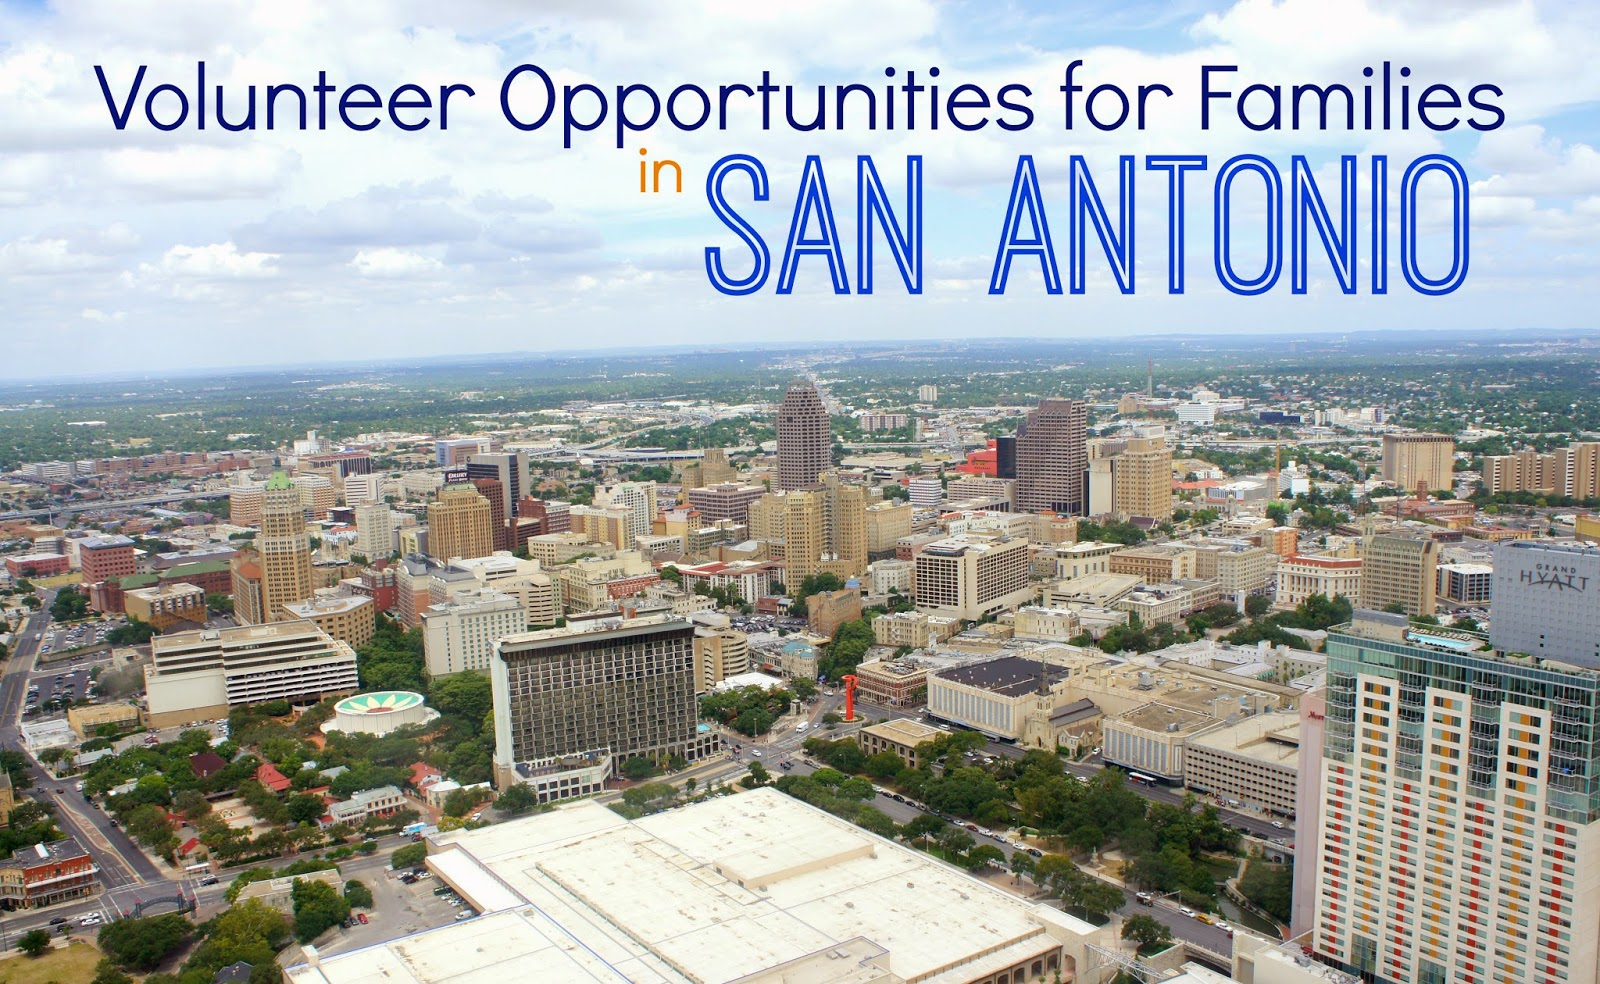 Volunteer Opportunities for families and young children in San Antonio